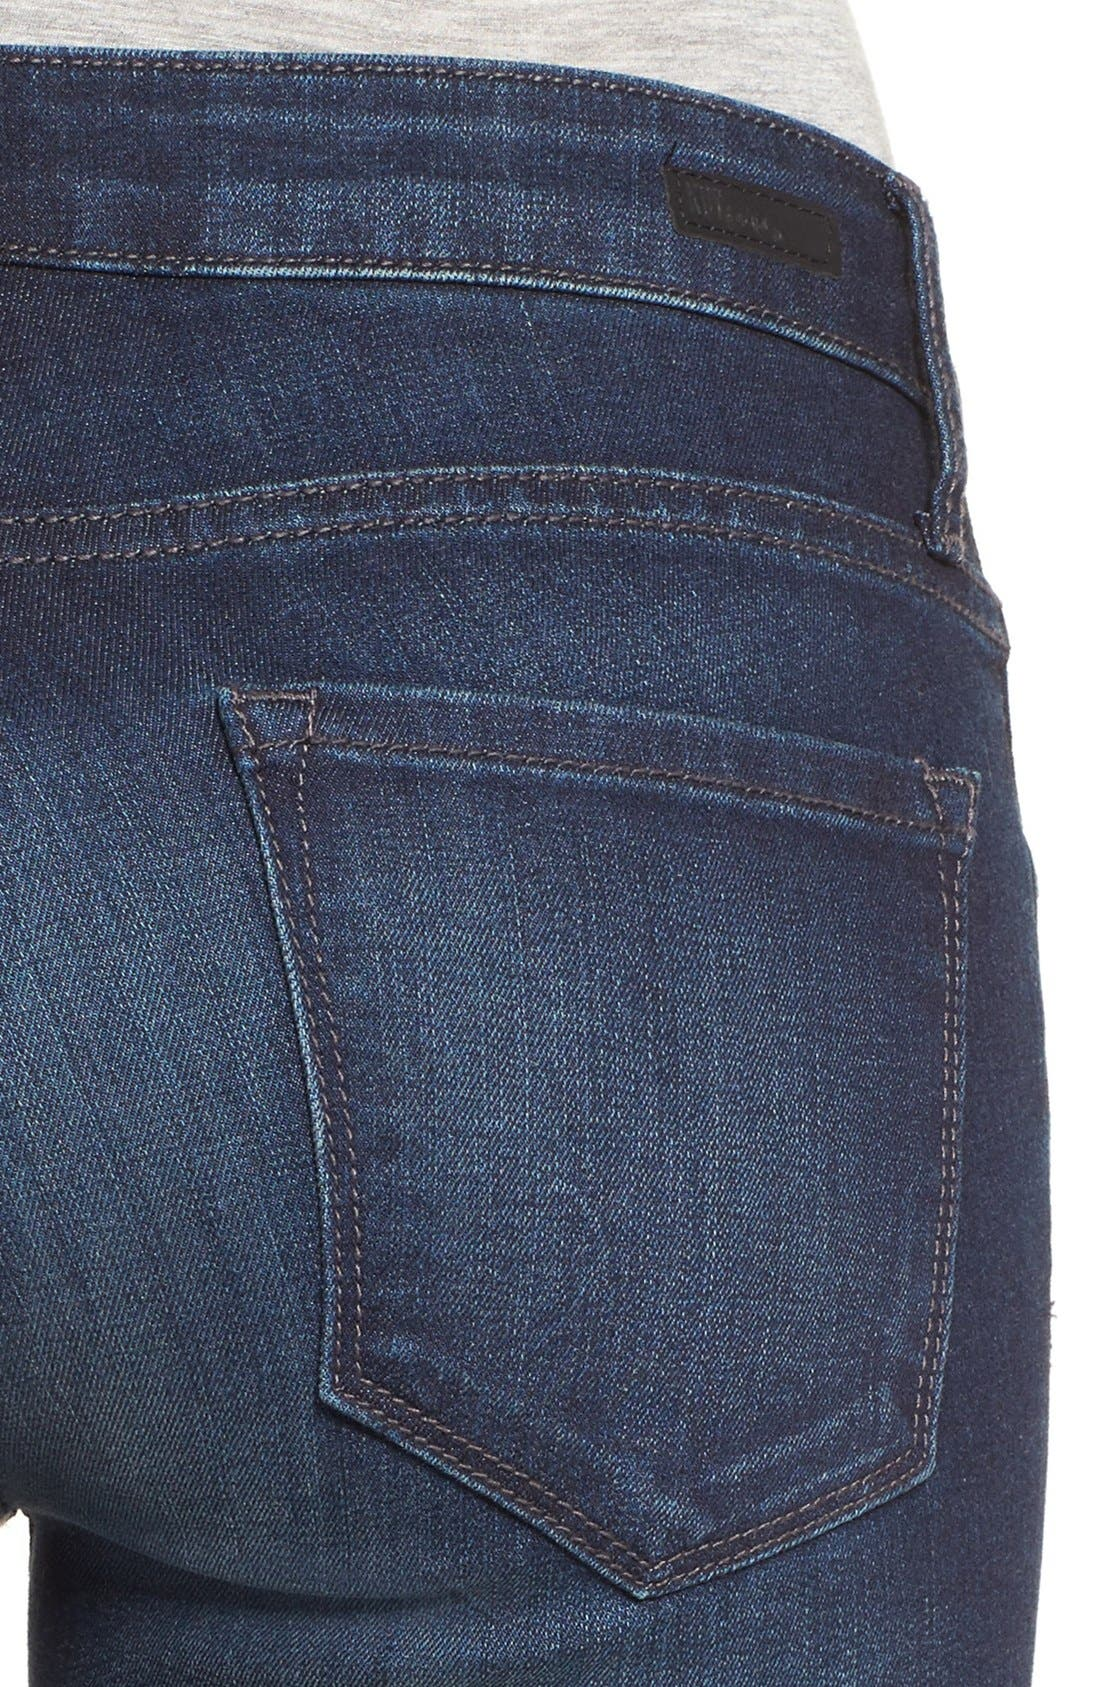 Alternate Image 4  - KUT from the Kloth 'Reese' Crop Flare Leg Jeans (Security)